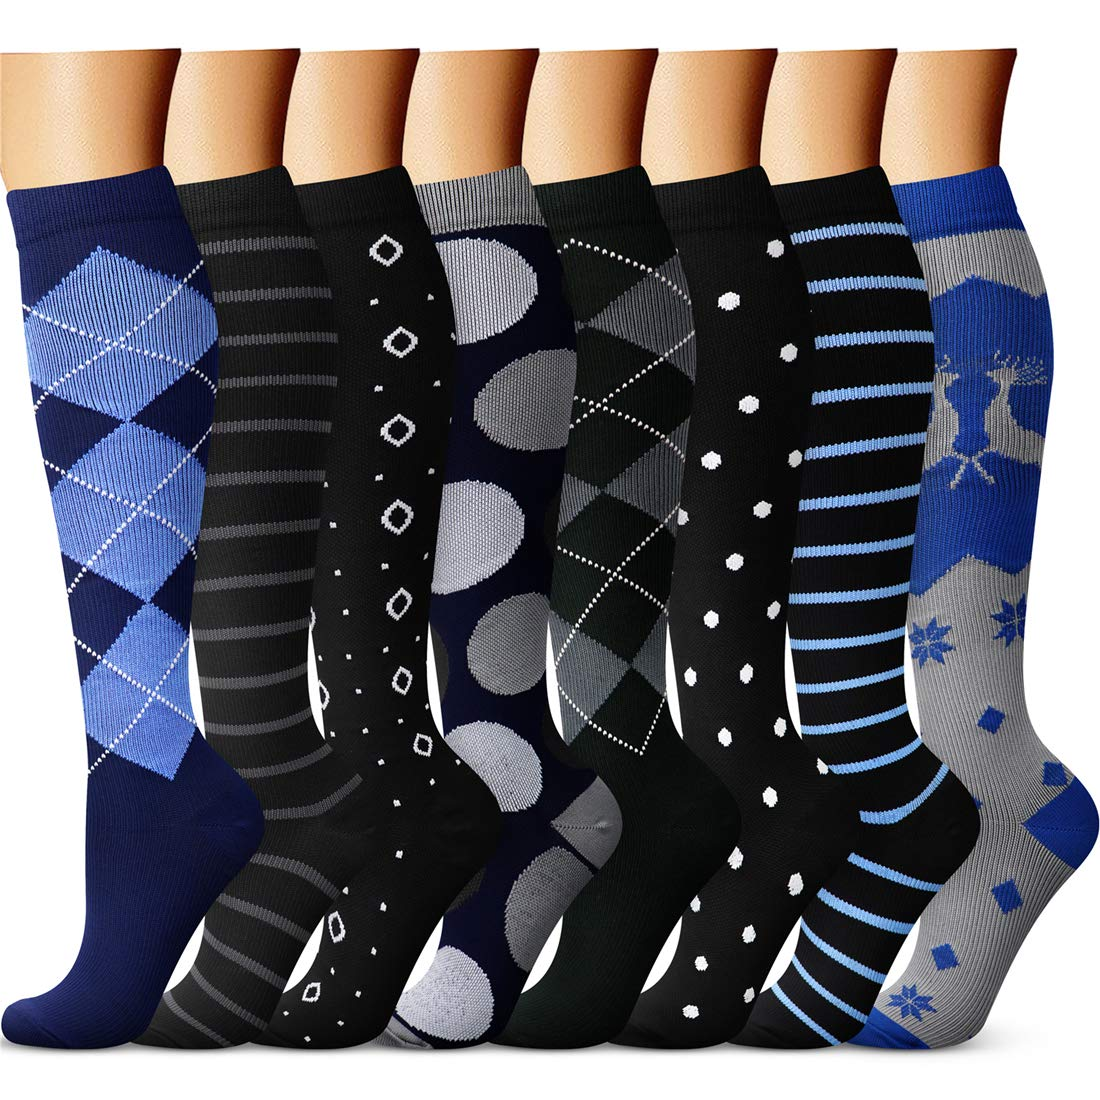 CHARMKING Copper Compression Socks for Women & Men (8 Pairs) 20-25 mmHg is Best Athletic, Running, Flight Travel,Cycling